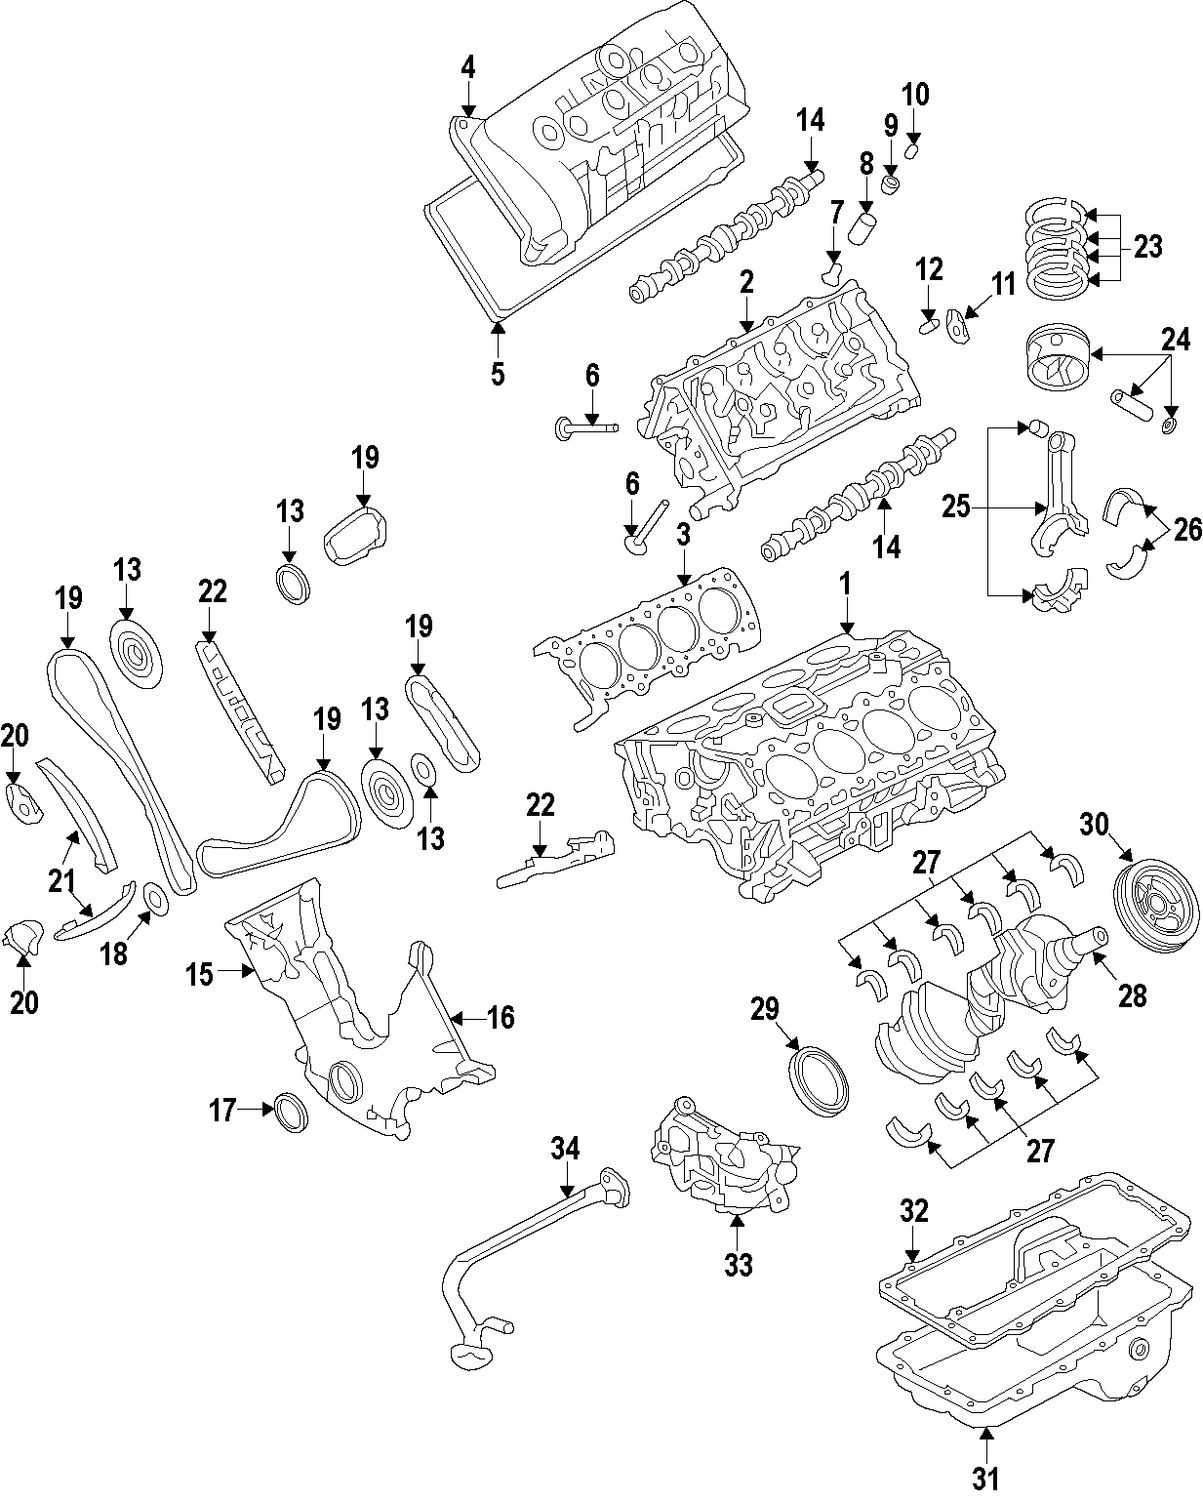 Ford Mustang Parts Diagram Wiring Diagram For Free